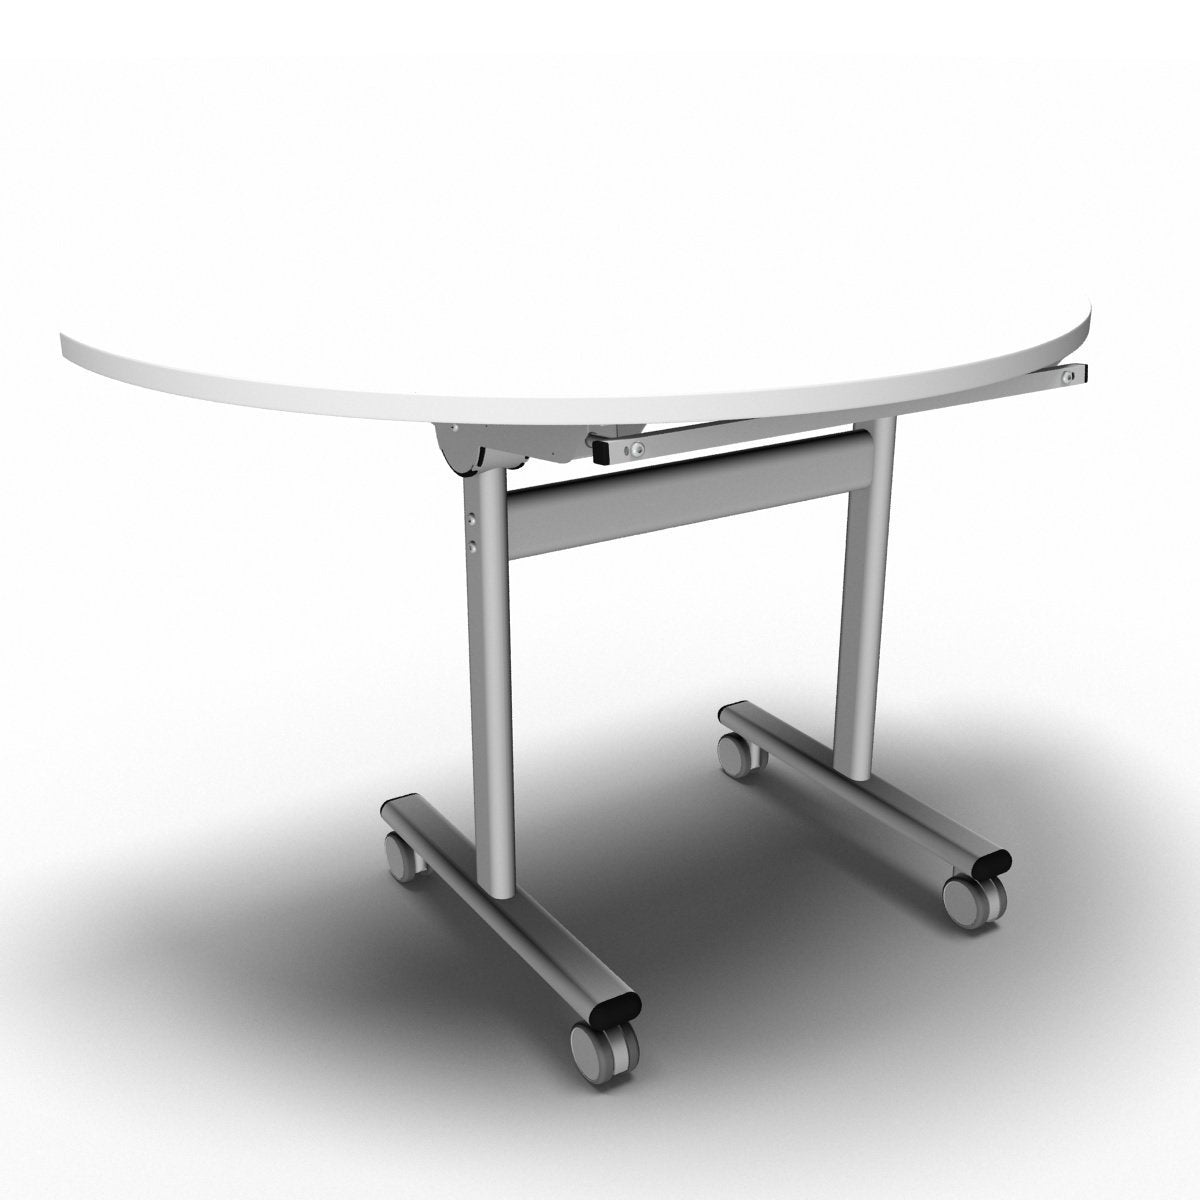 Table 1200 x 600 x 720mm / Semi Circular / White Synergy Flip Top Tables